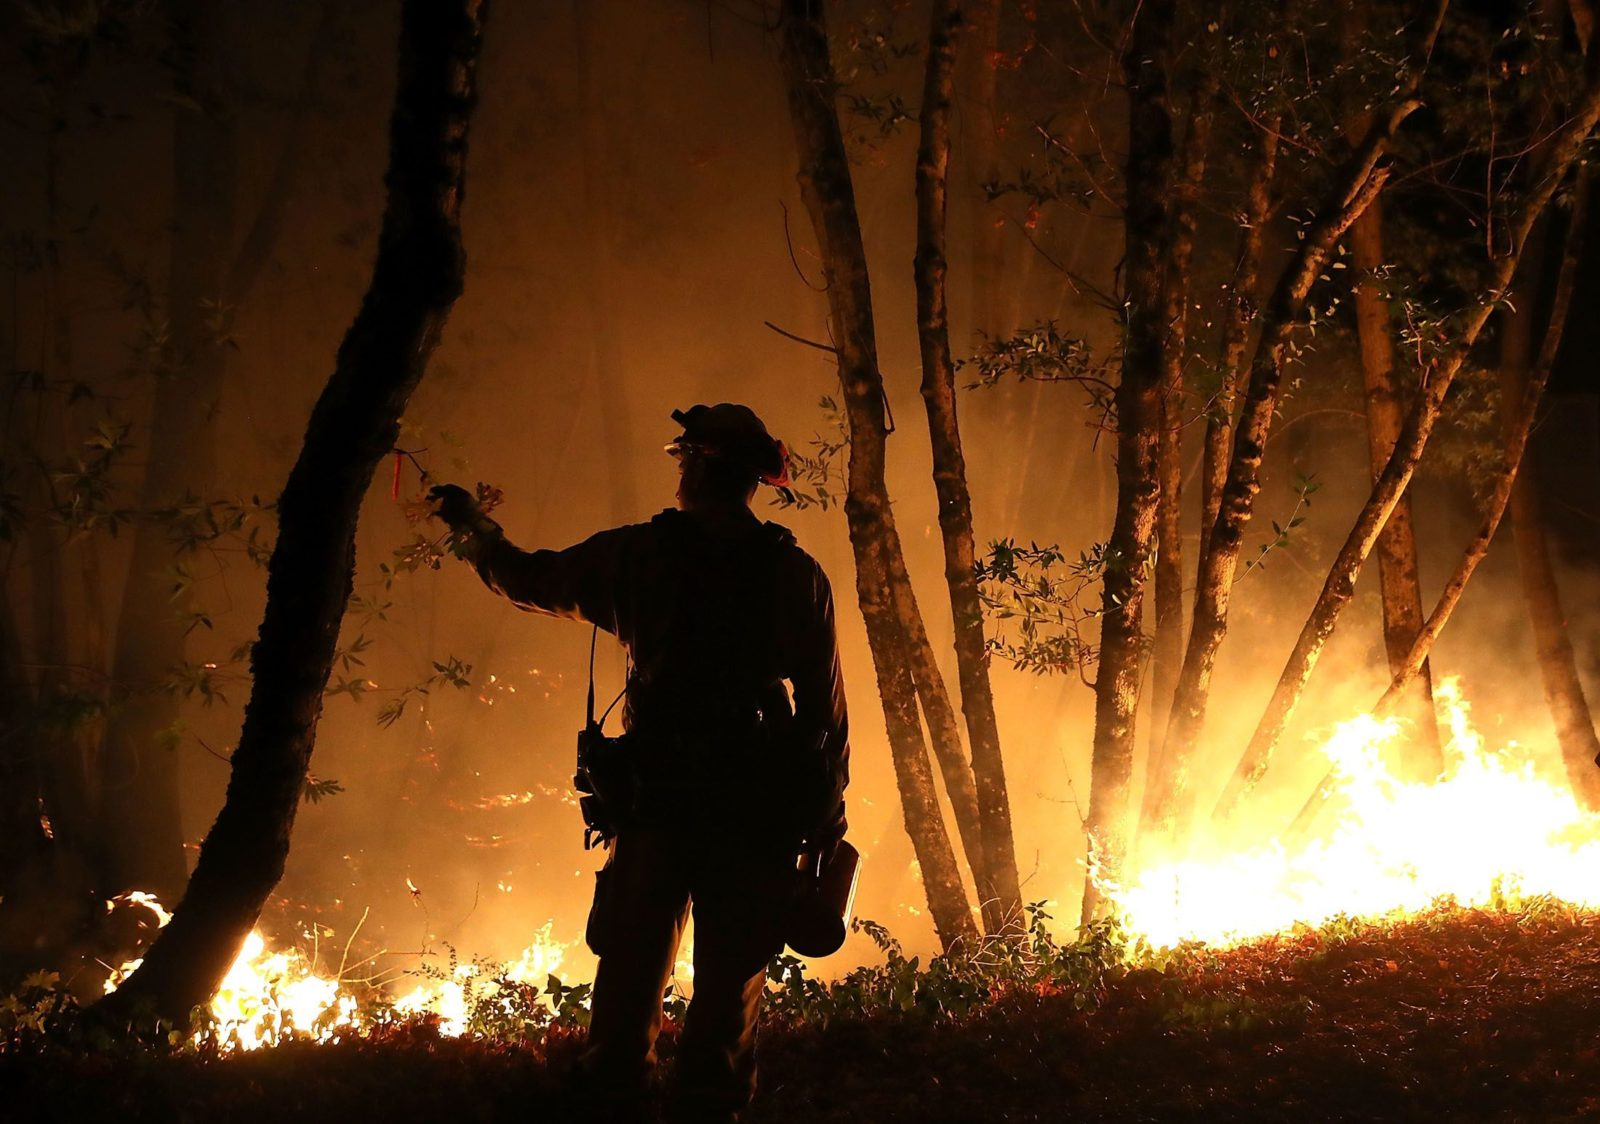 Political News: PG&E Loses Fight Over Fire Policy That Led to Its Bankruptcy – Yahoo Finance